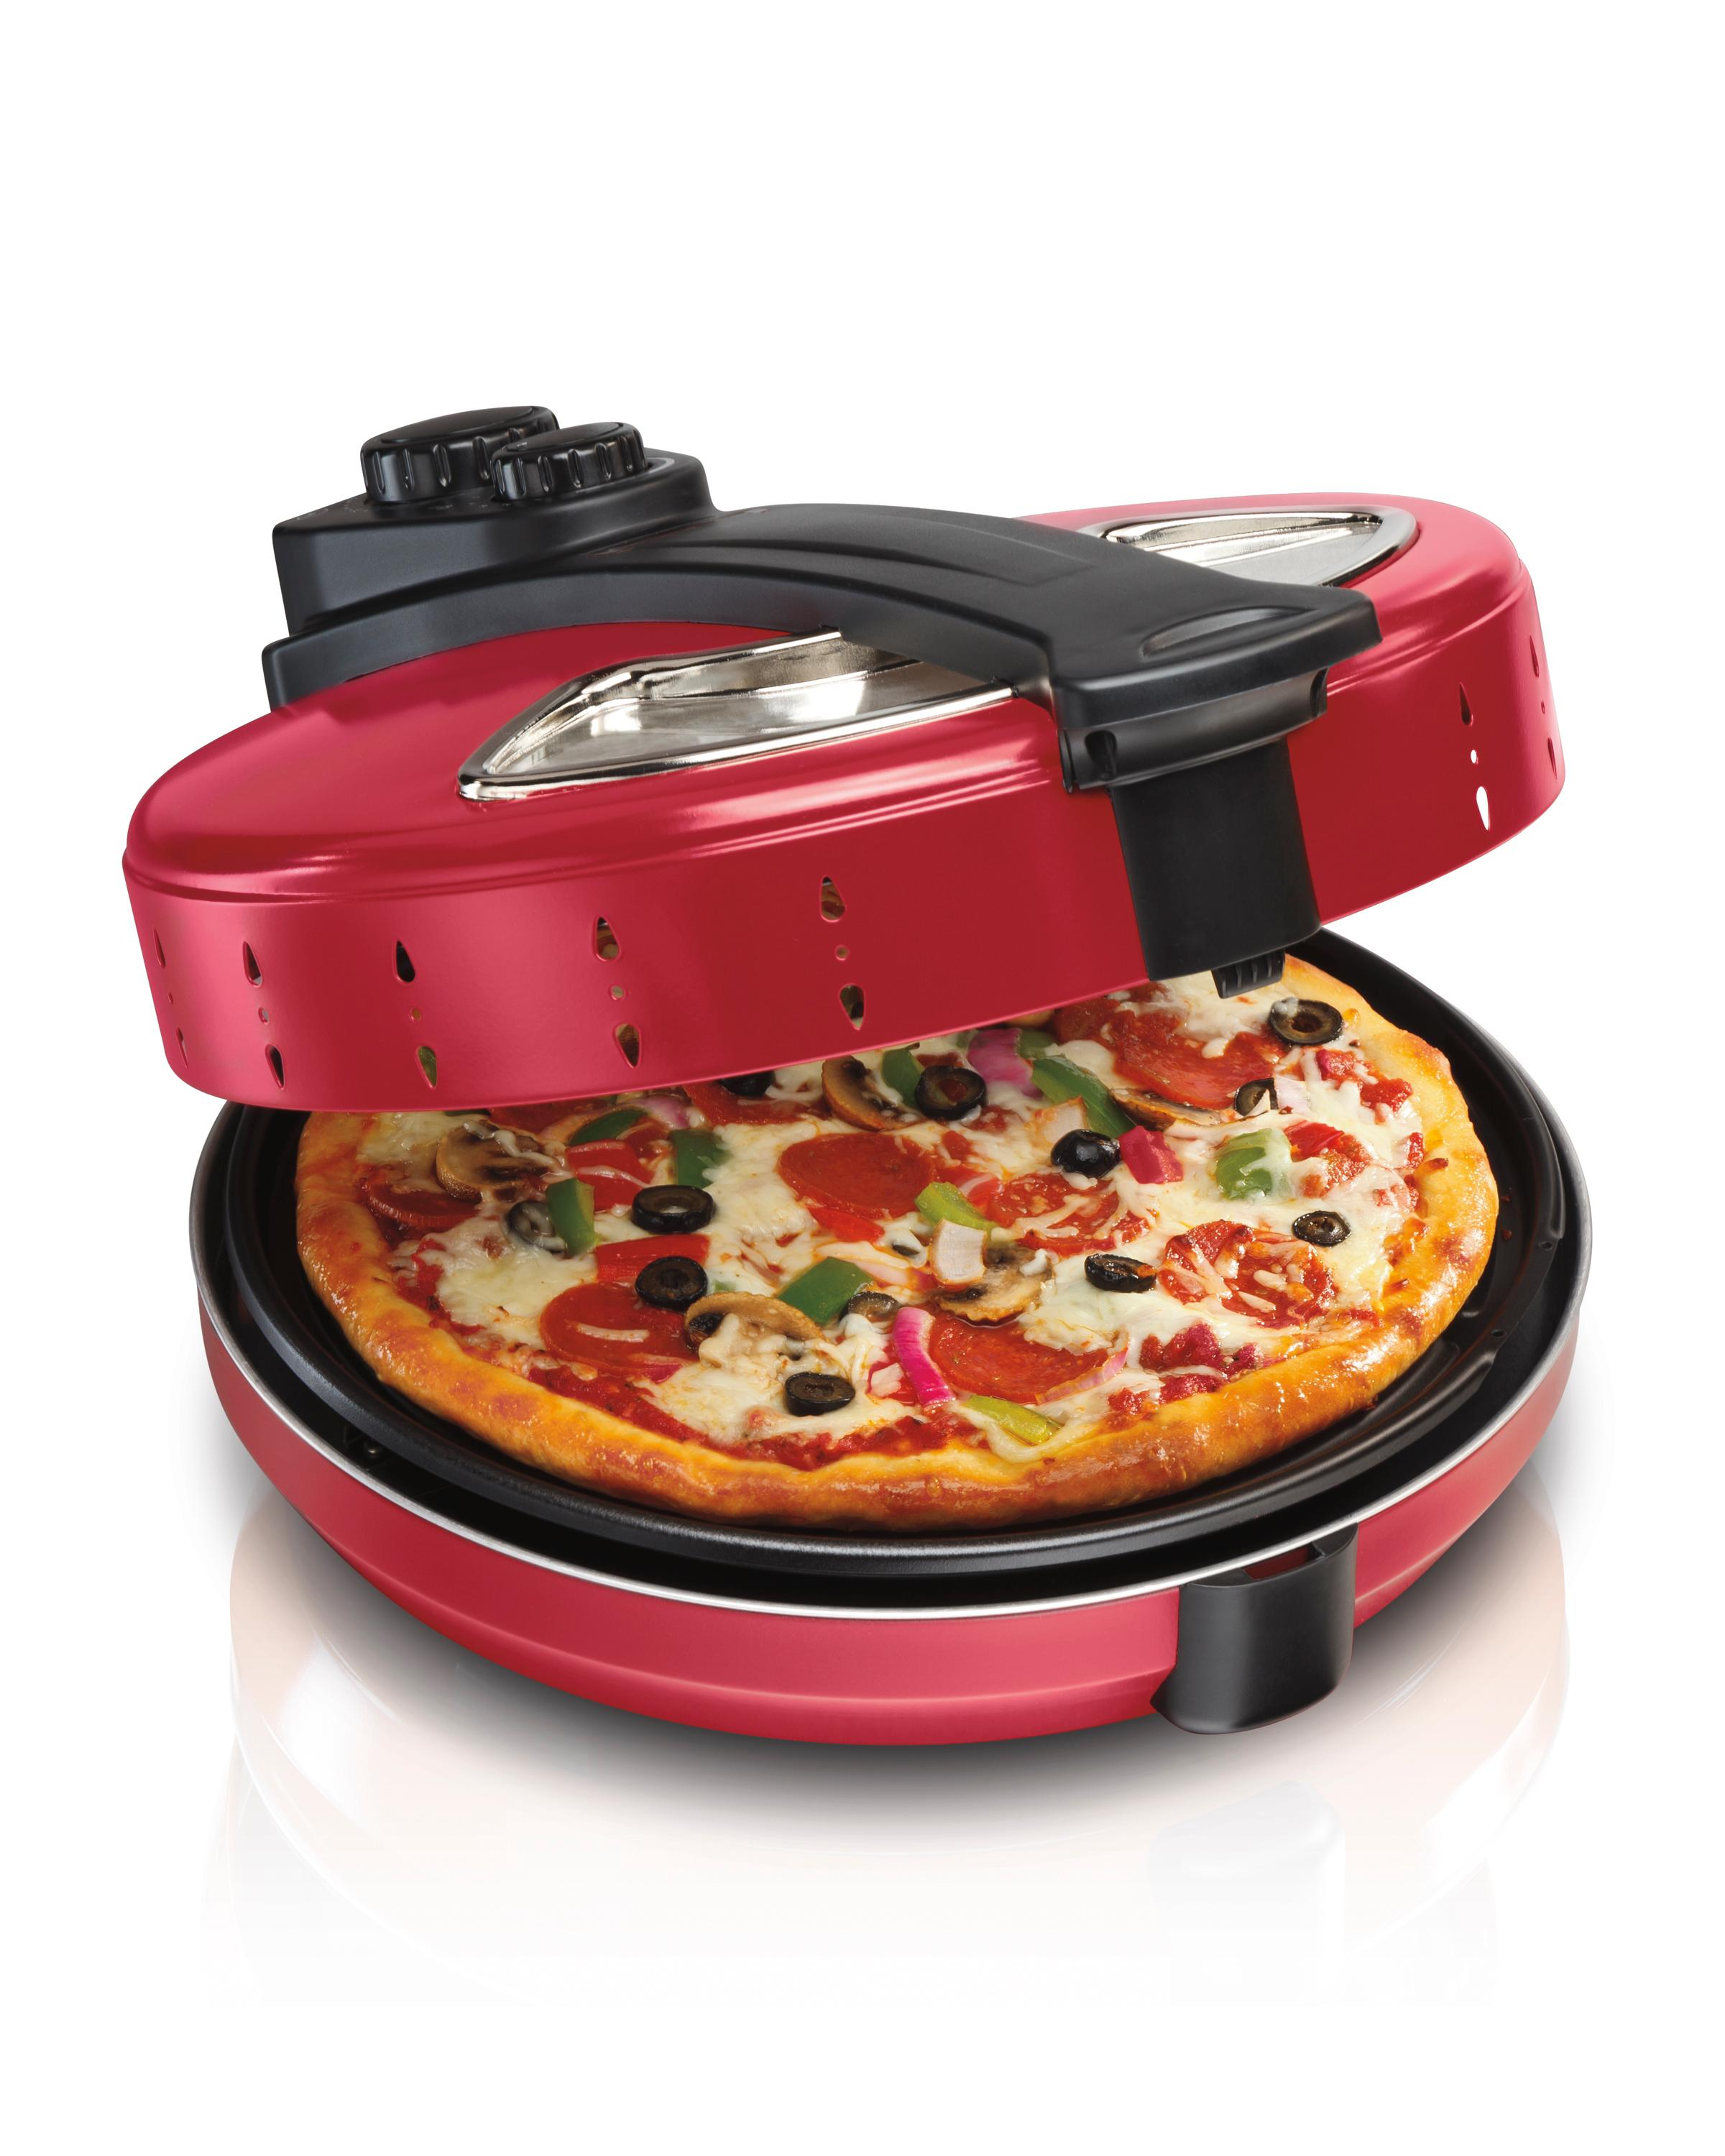 pizza ovens small for kids maker mini pizza best rated. Black Bedroom Furniture Sets. Home Design Ideas